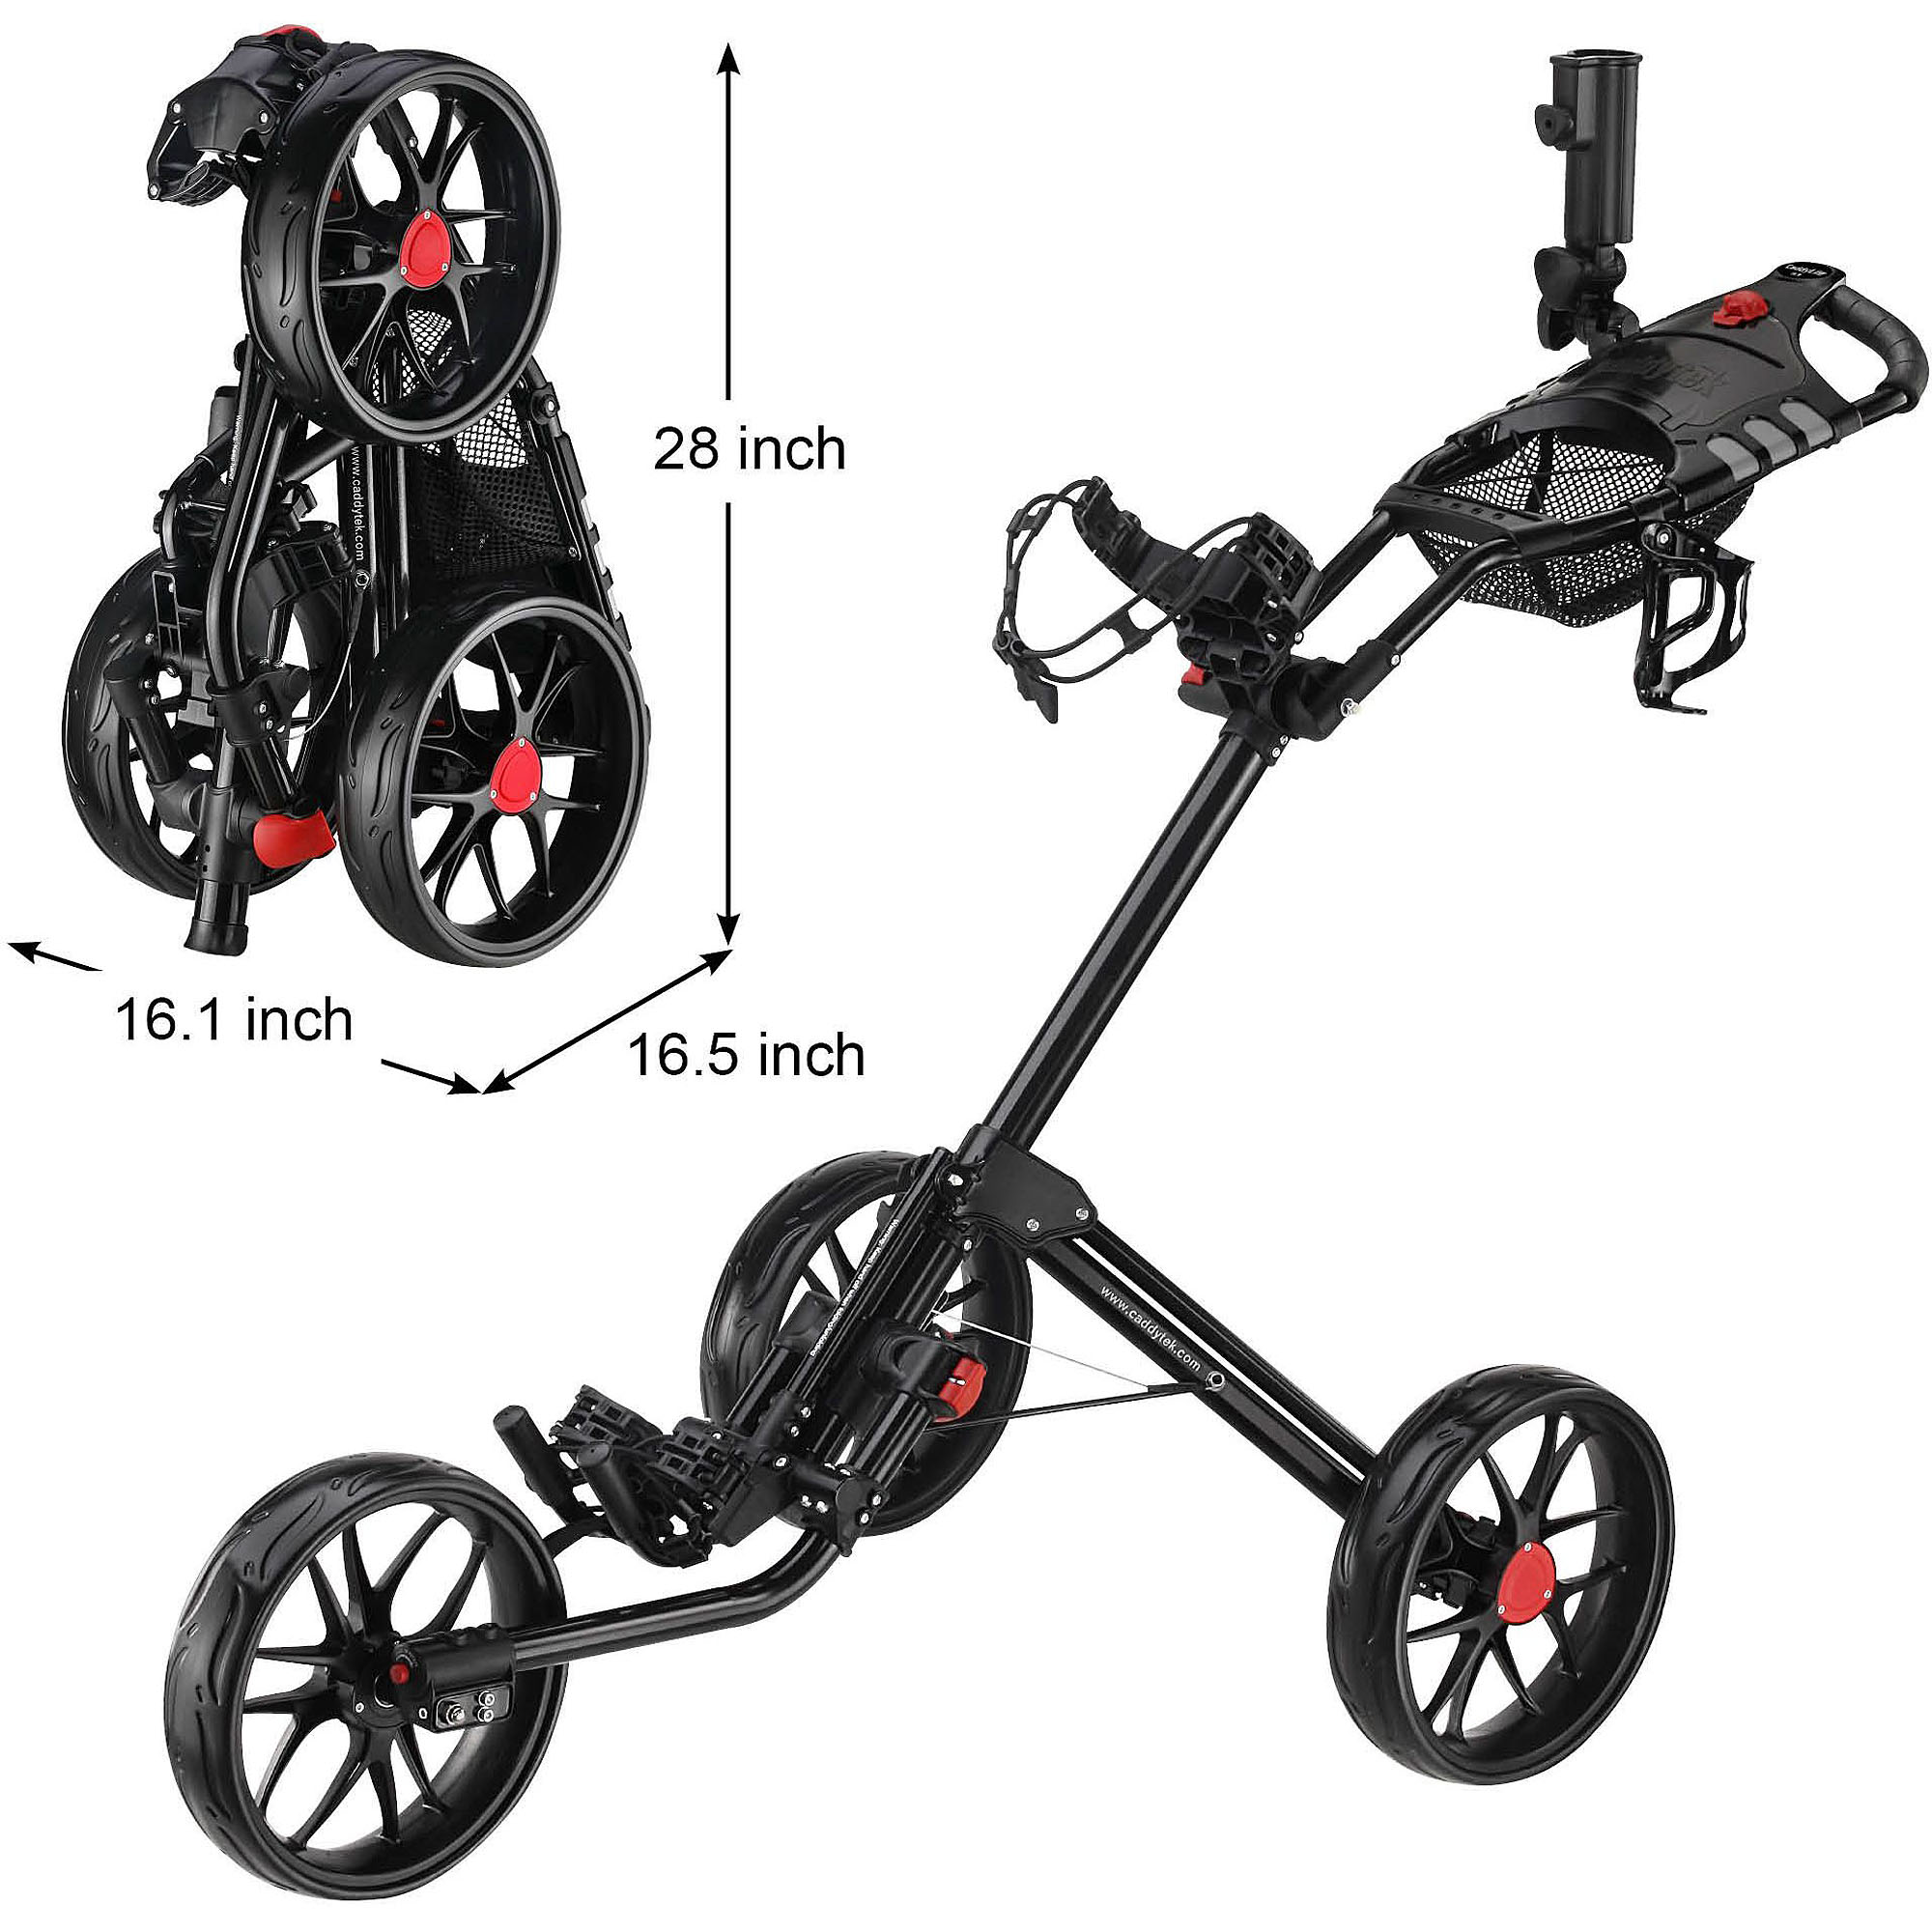 CaddyTek Super Deluxe Quad-Fold Golf Push Cart, Black